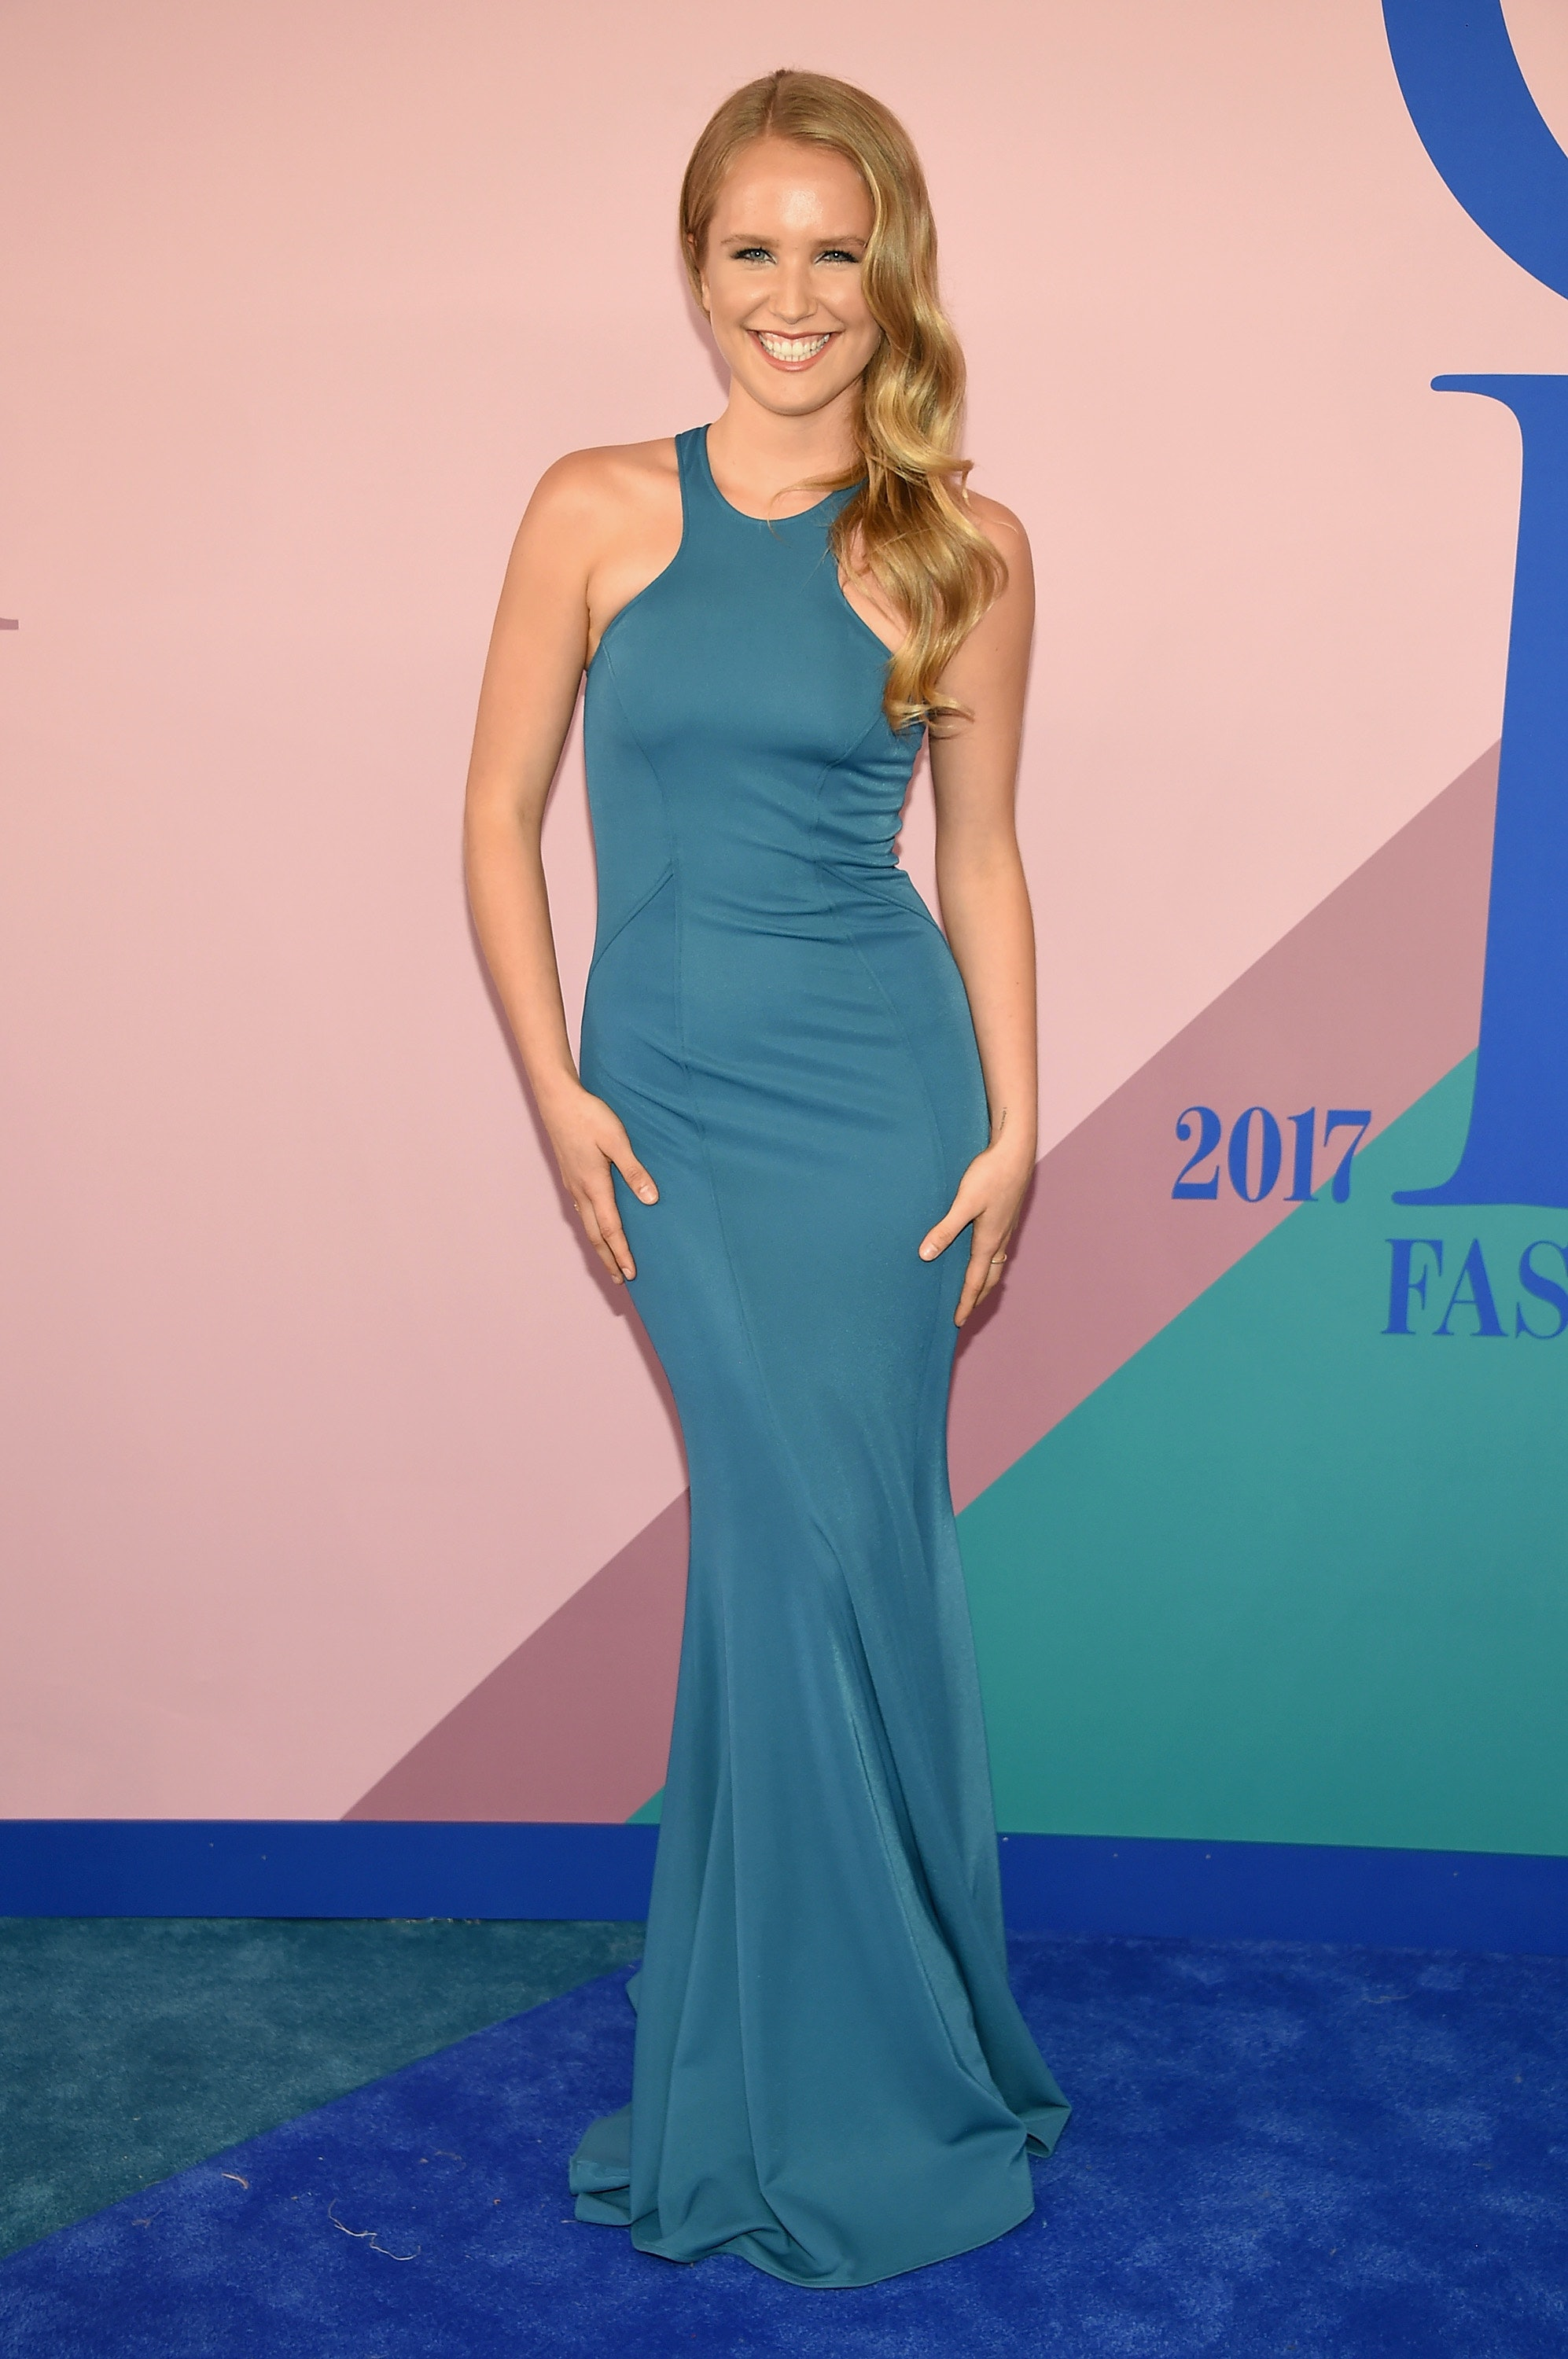 All The Looks From The 2017 CFDA Fashion Awards Are As Cool As You\'d ...